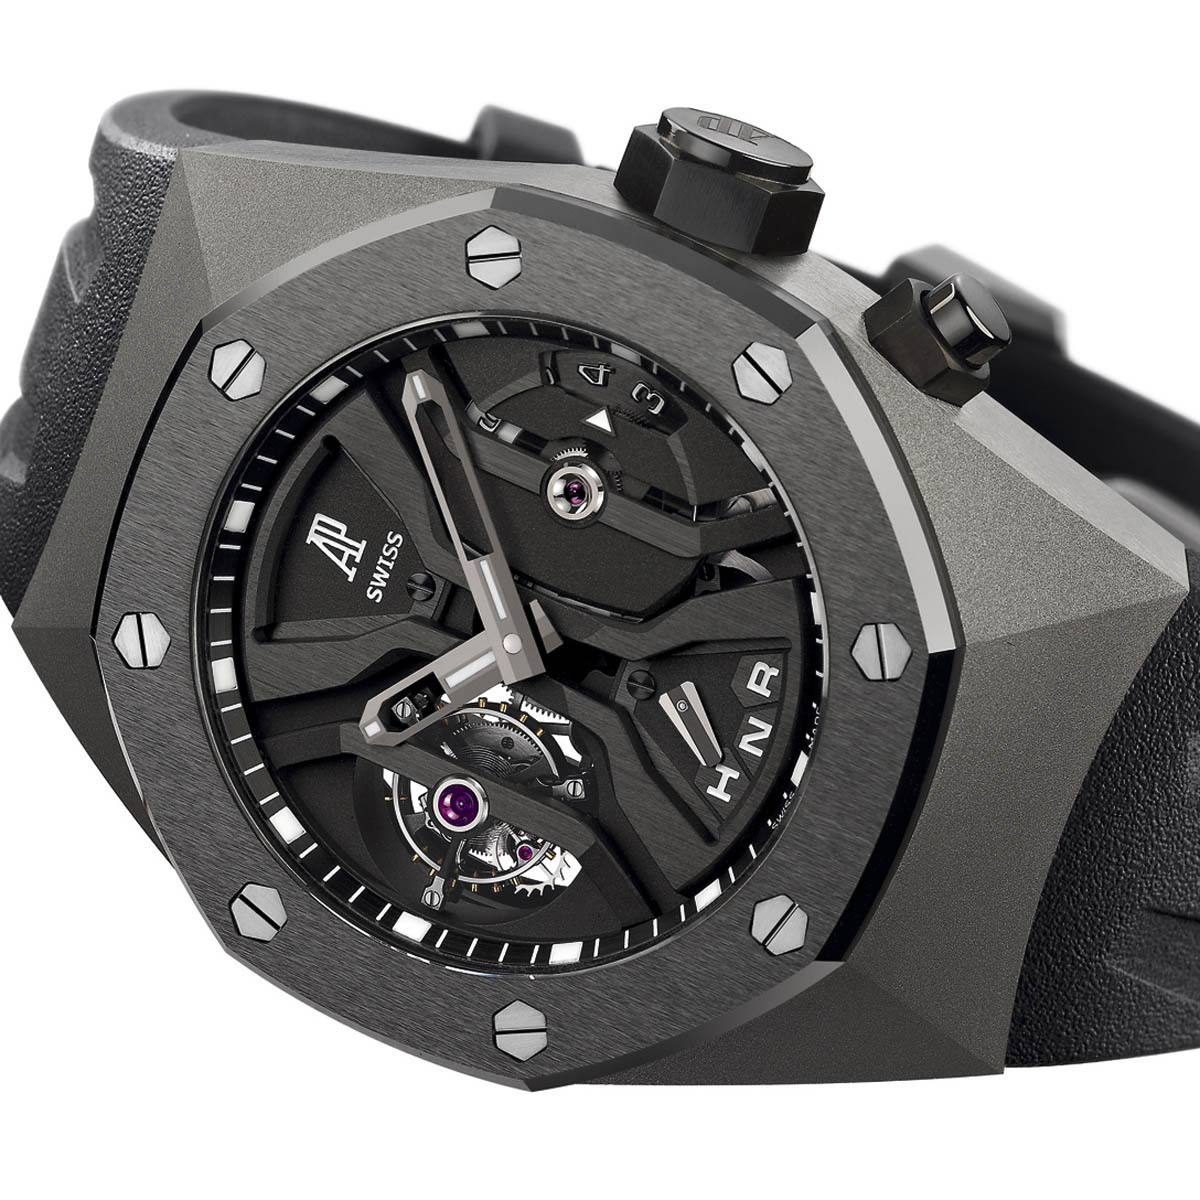 Audemars Piguet Royal Oak Concept GMT Tourbillon (2011)